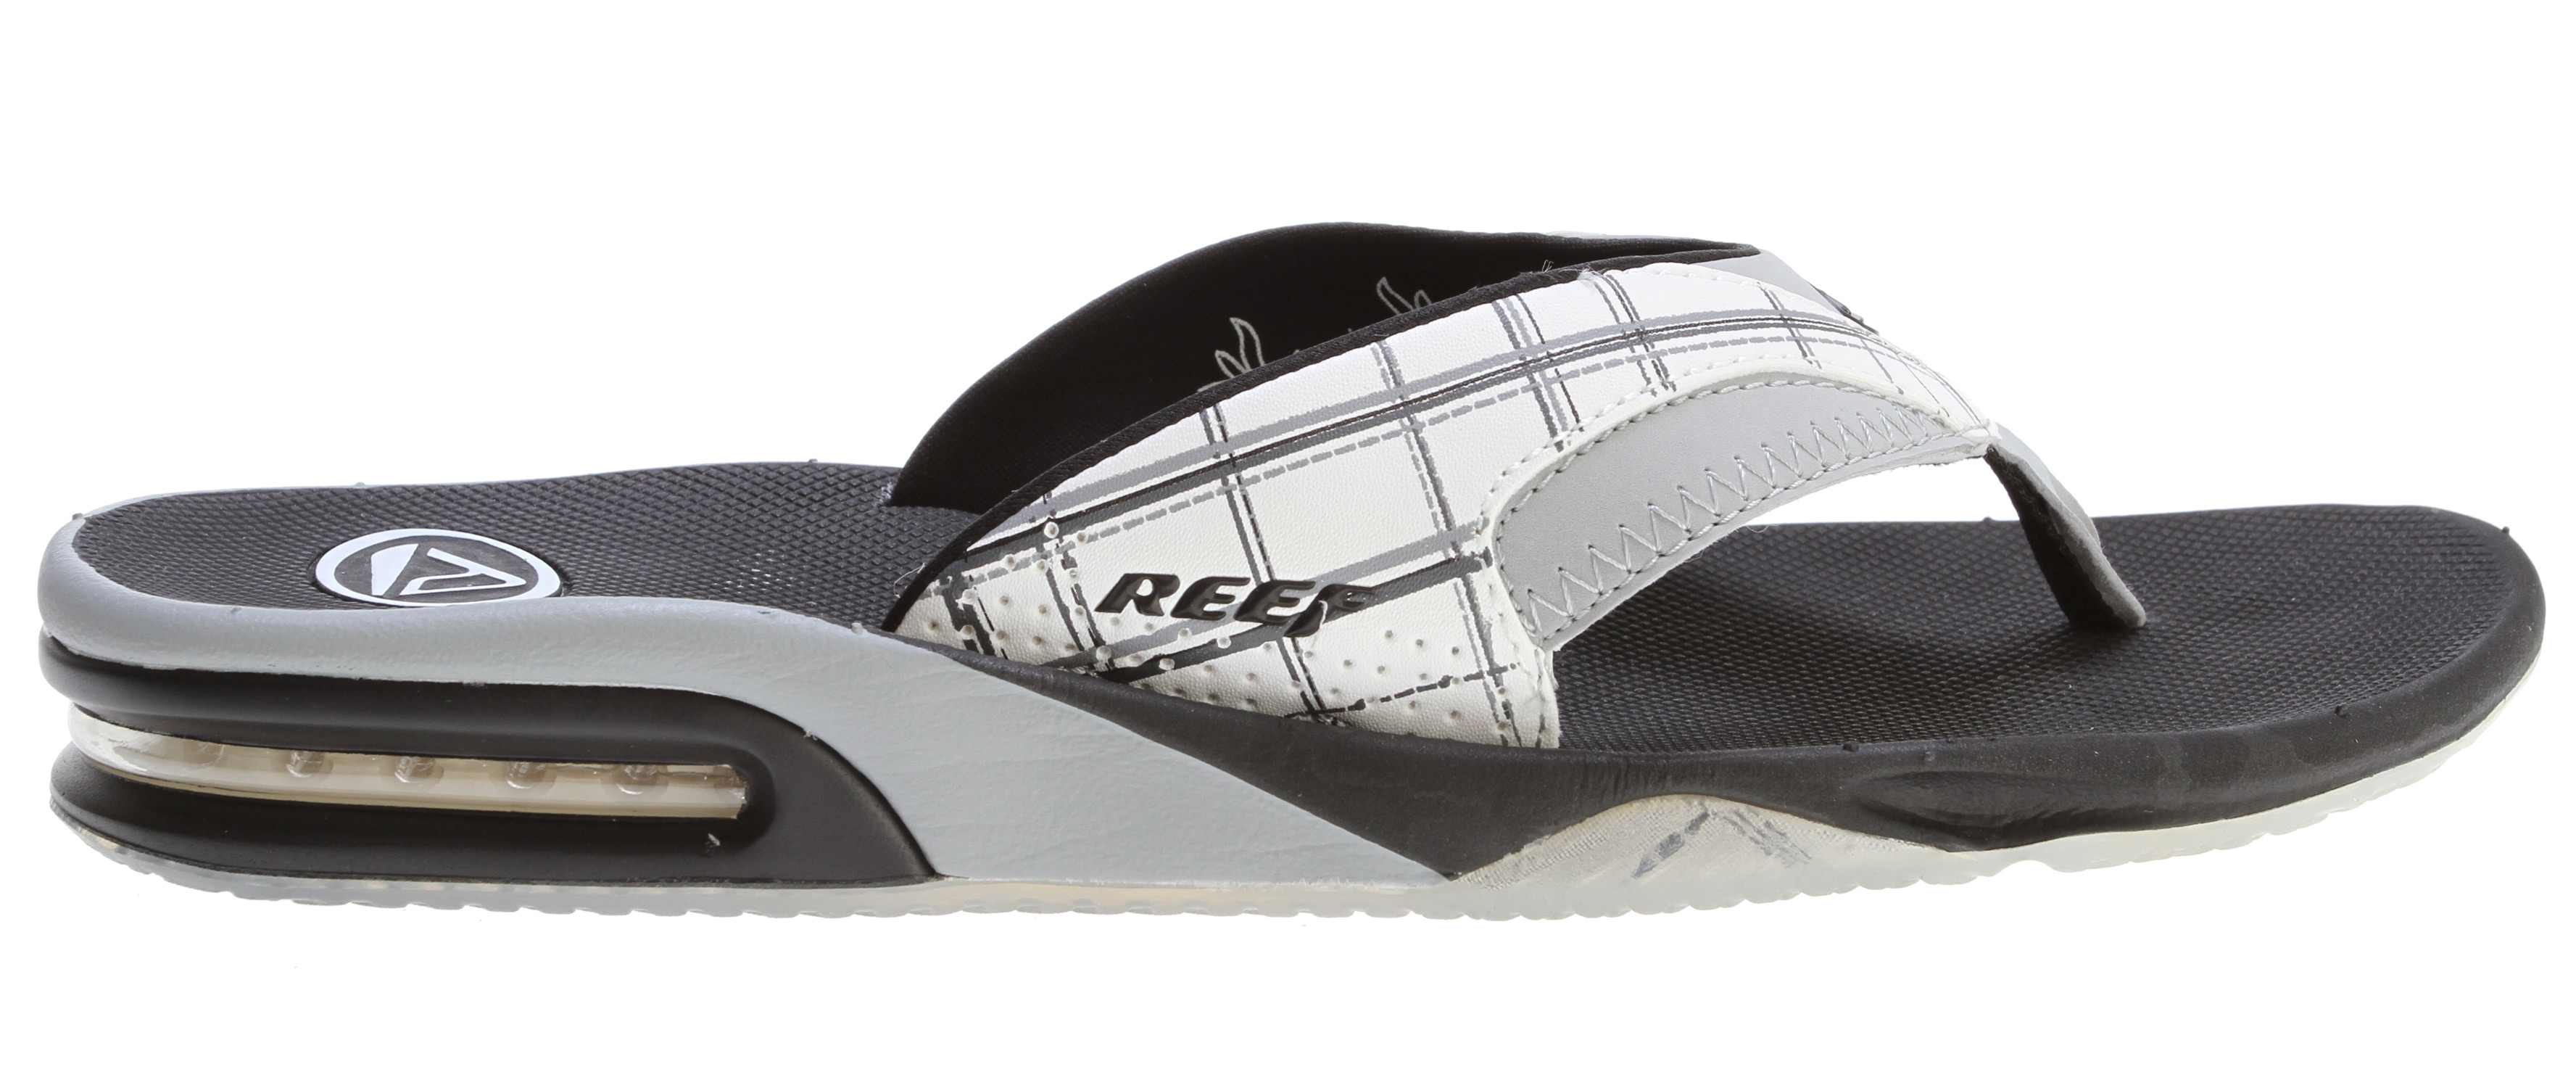 "Surf Key Features of the Reef Fanning Prints Sandals: Comfortable, water friendly synthetic nubuck upper contoured compression molded eva footbed with anatomical arch support Full 360° heel airbag enclosed in soft polyurethane Church key to open your ""soda"" bottle Reef icon herringbone rubber outsole - $38.95"